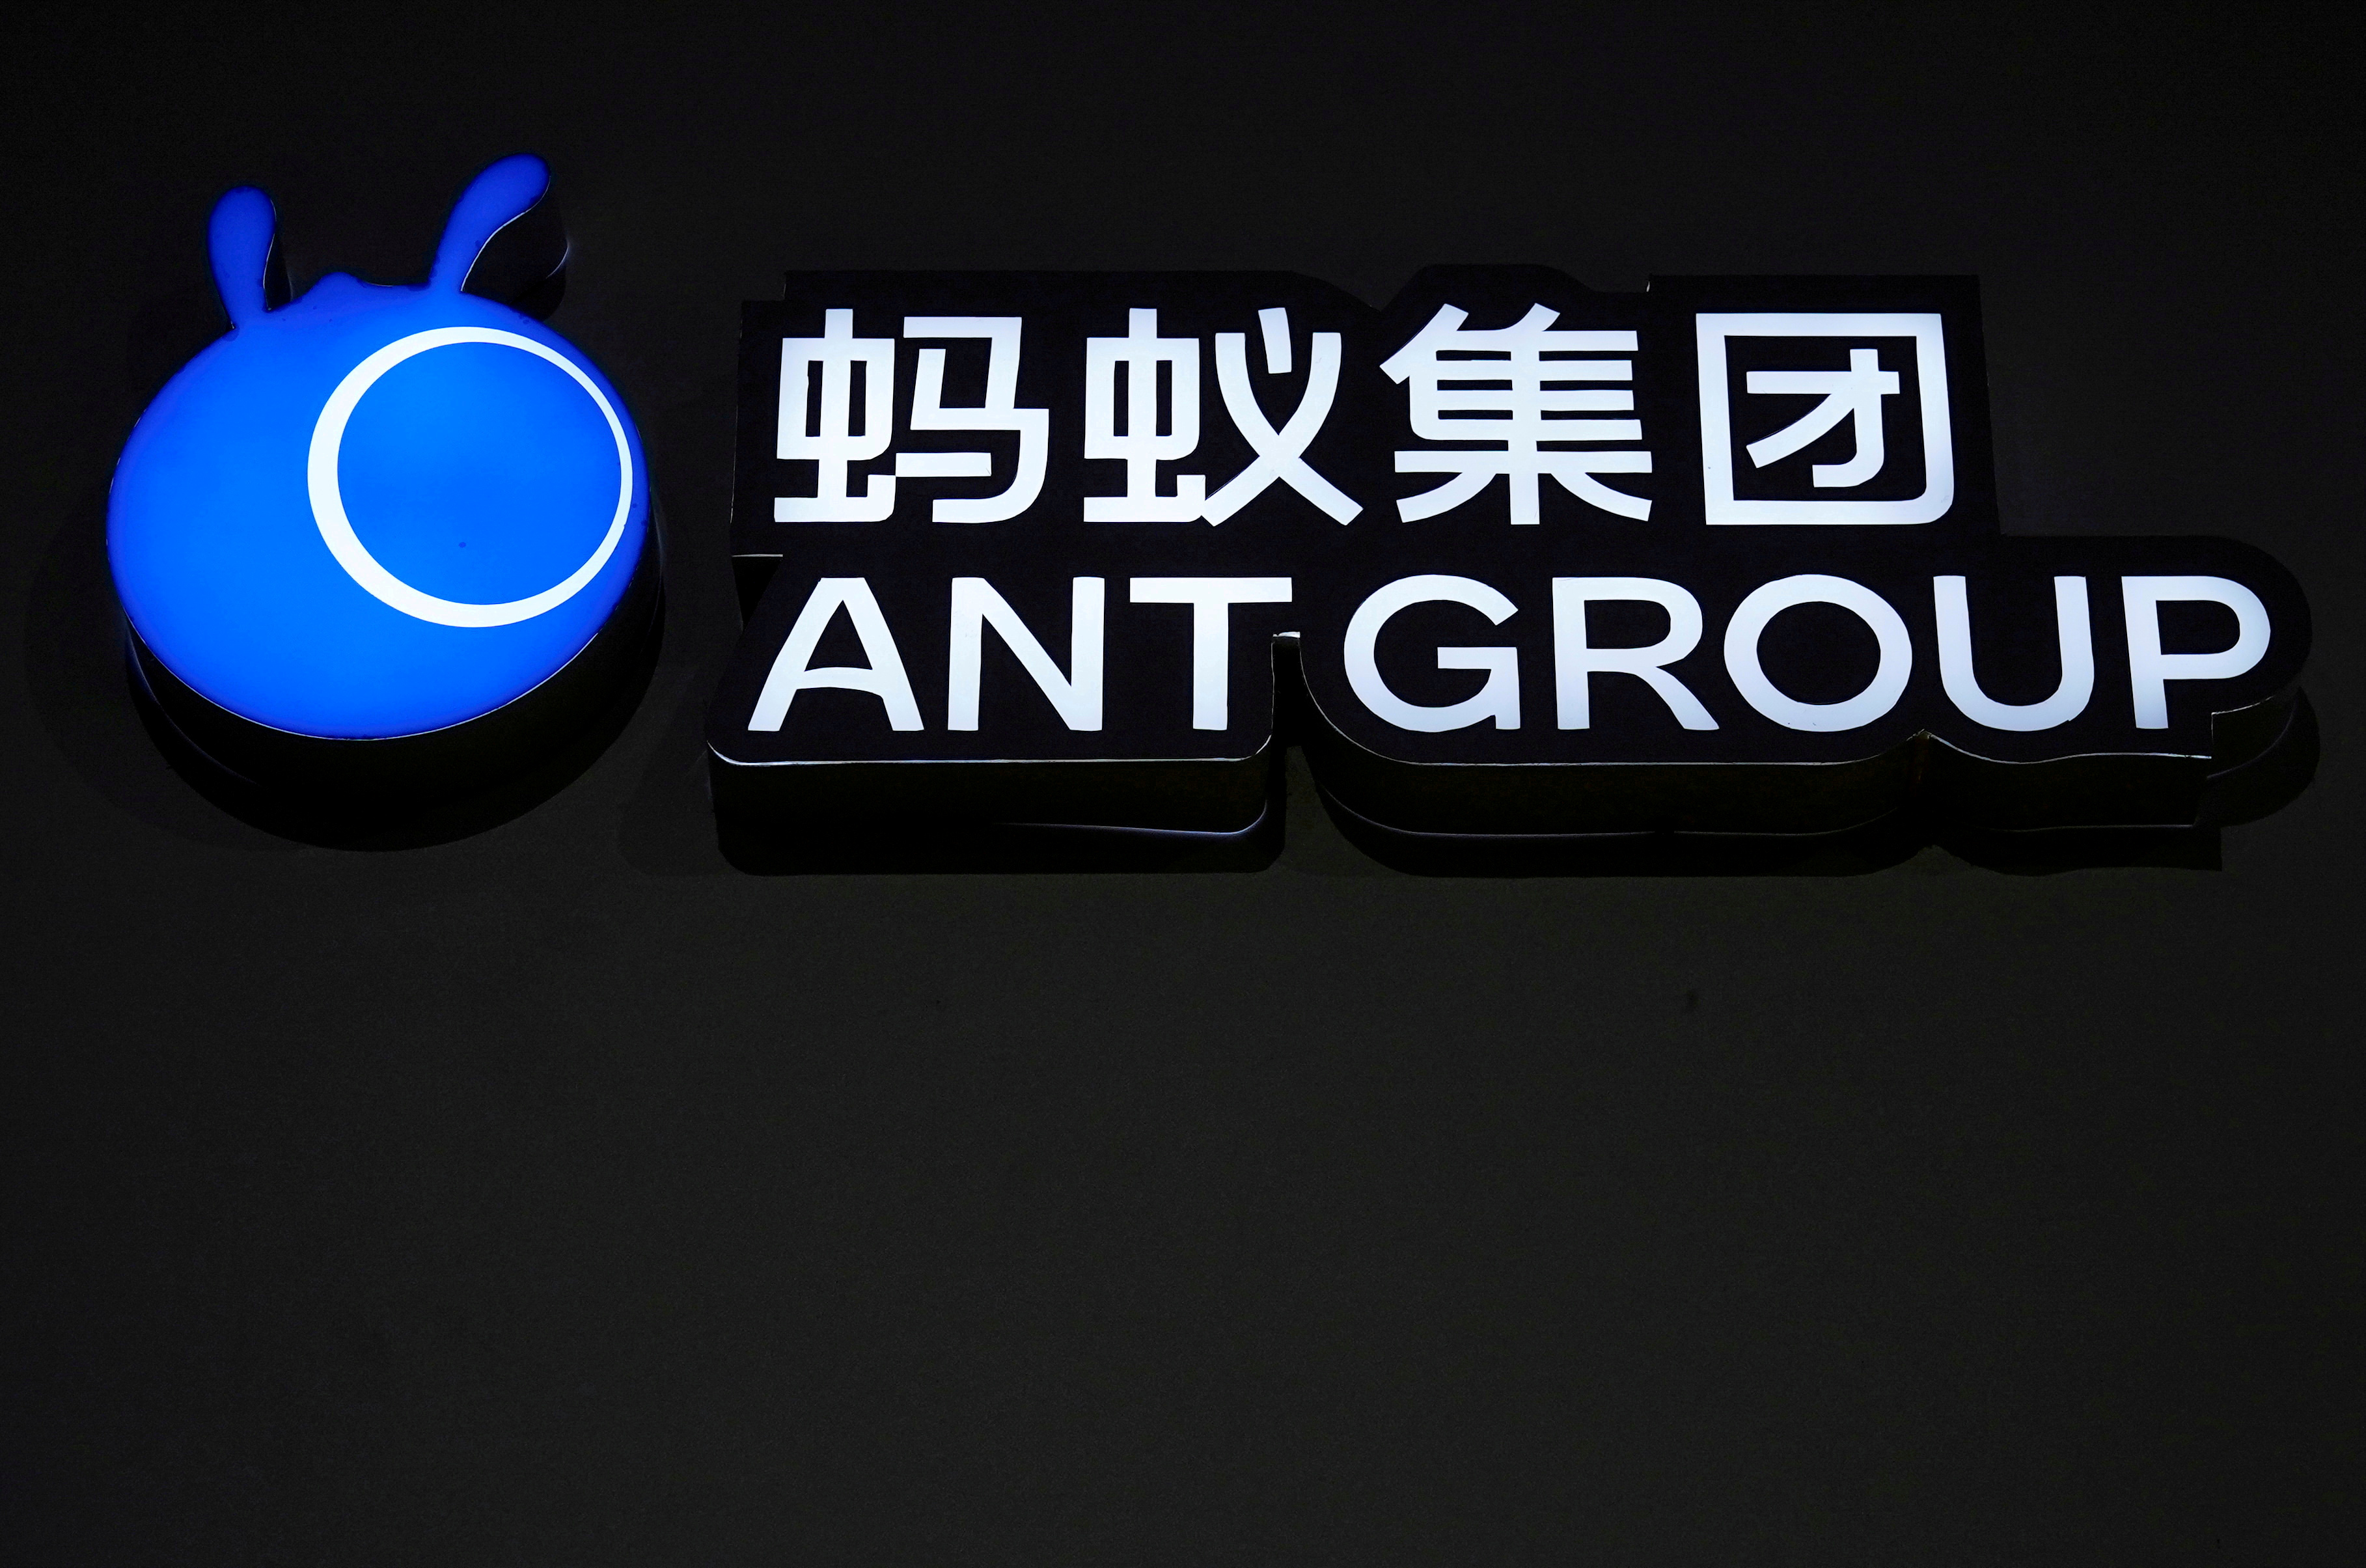 A sign of Ant Group is seen during the World Internet Conference (WIC) in Wuzhen, Zhejiang province, China, November 23, 2020. REUTERS/Aly Song